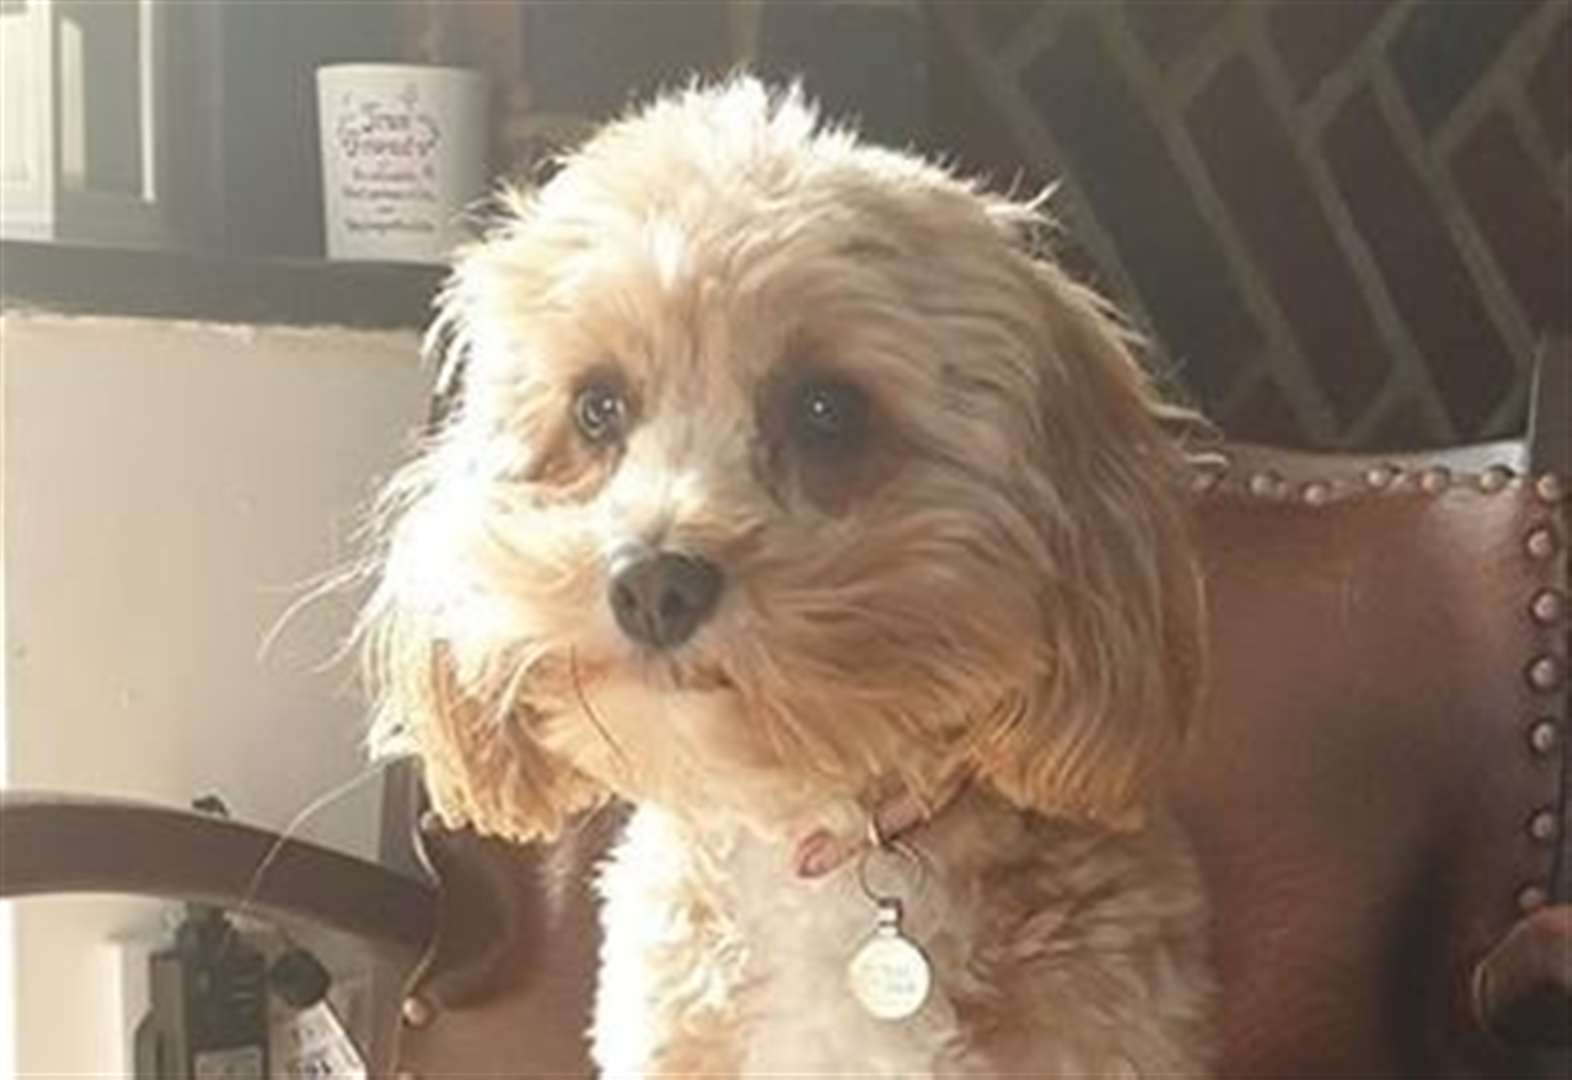 Mum's appeal to find autistic son's dog